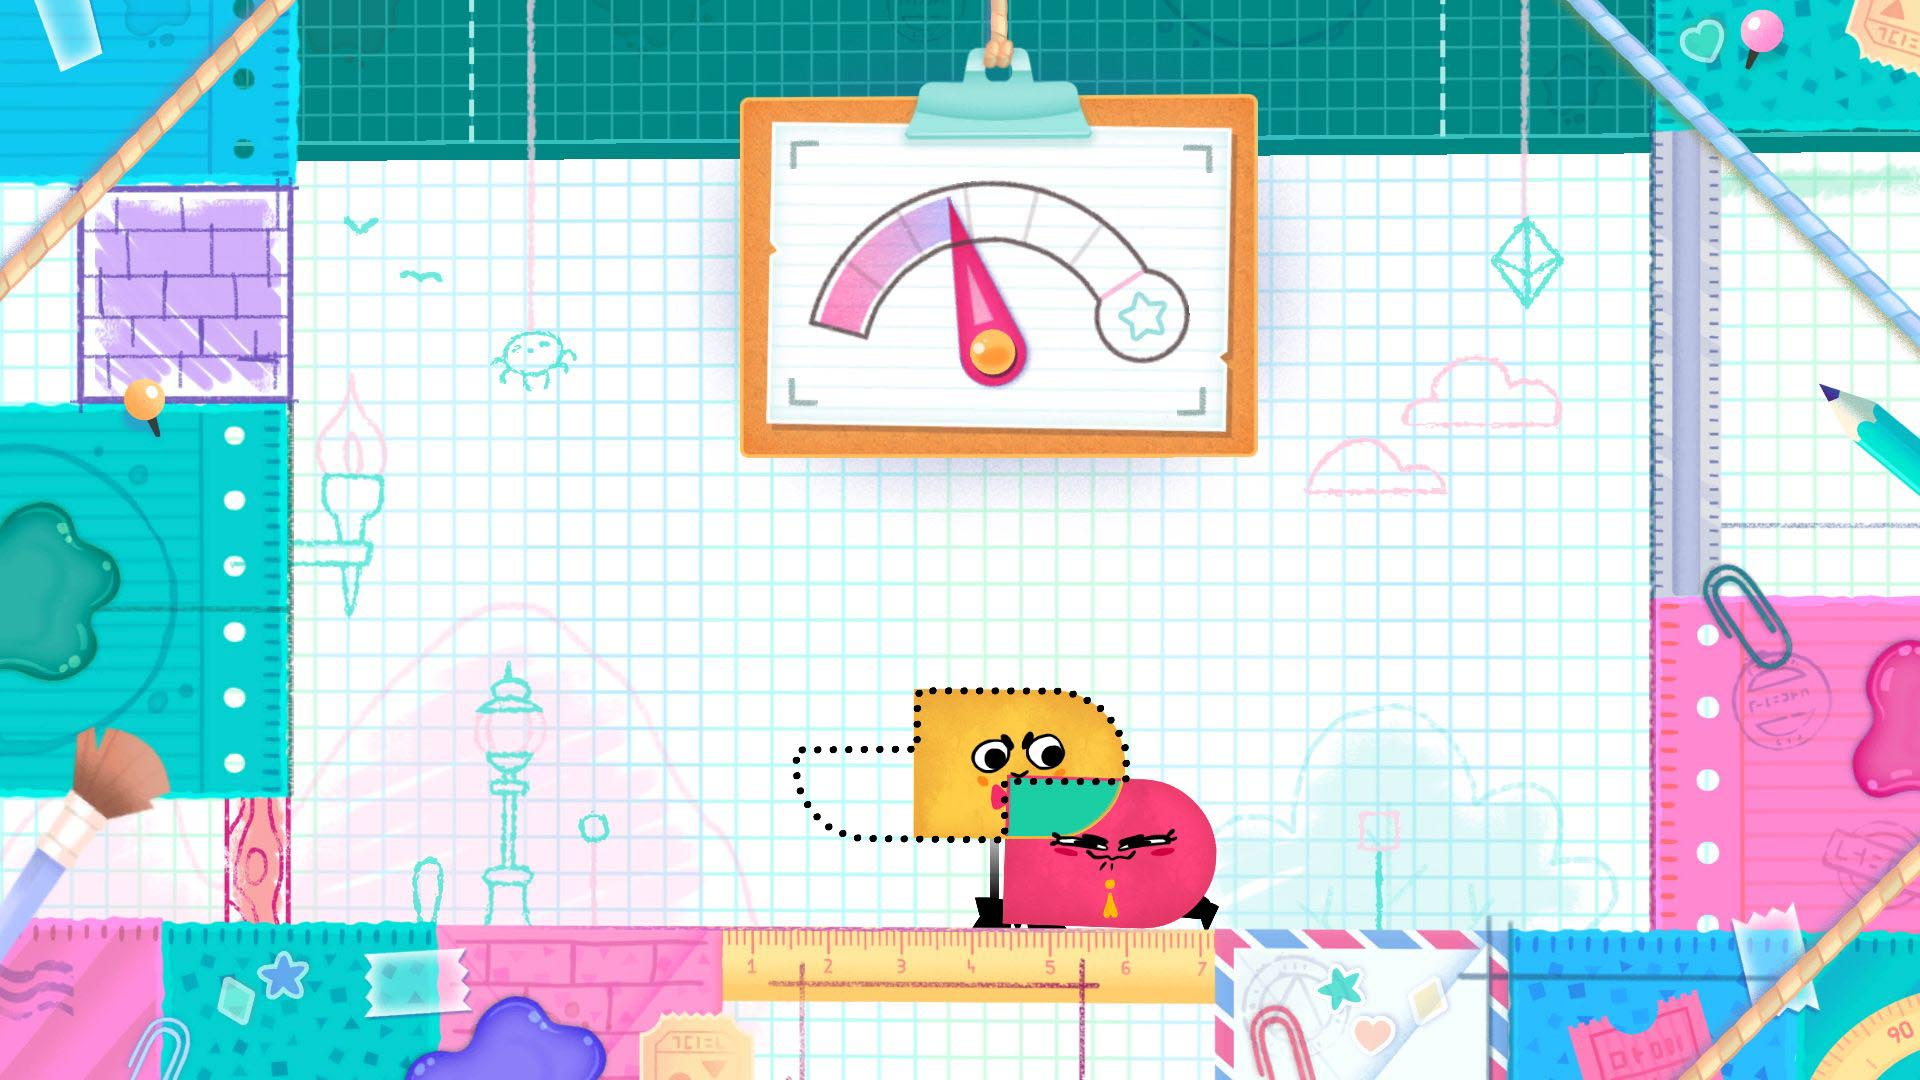 1_NintendoSwitch_Snipperclips_Screenshots_Snippers_Presentation2017_scrn01_v1